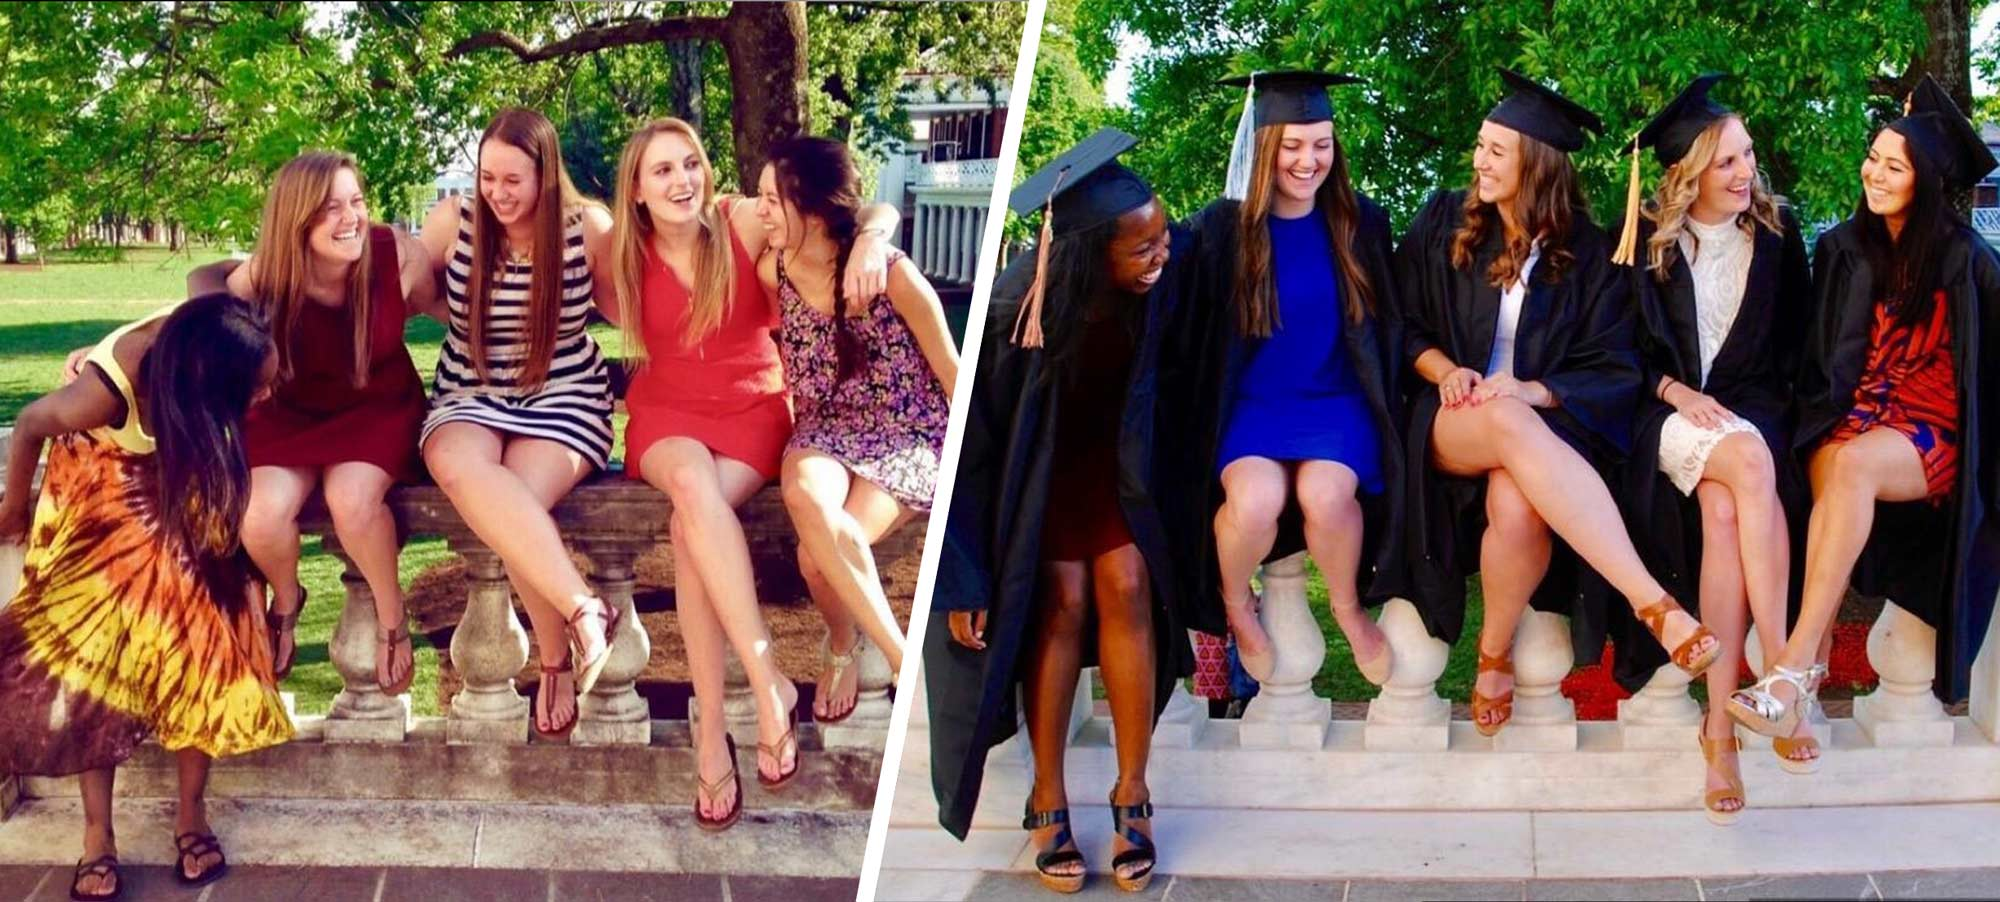 Dupree and her friends recreated their first-year photo for graduation. From left to right: Chanel DuPree, Deanna Madagan, Abby Systma, Kaitlyn Colliton and Jennifer Cifuentes.